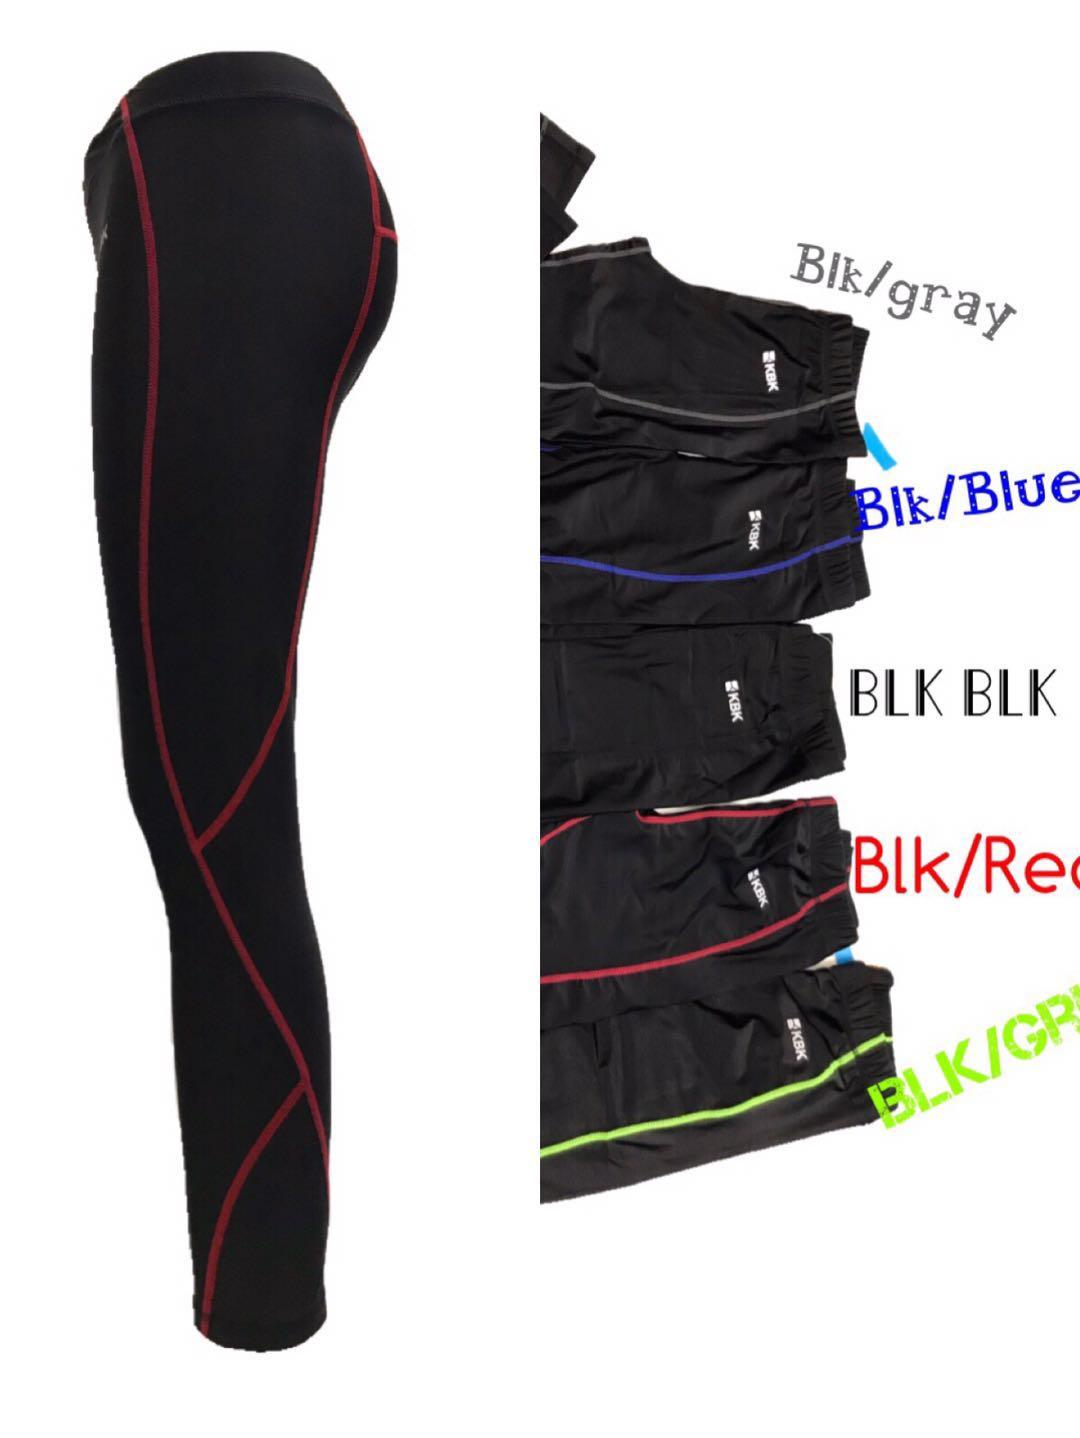 746af49988901 Compression pants#911-Cool Dry Sports Tights Pants Baselayer Runing Leggings  for women Men